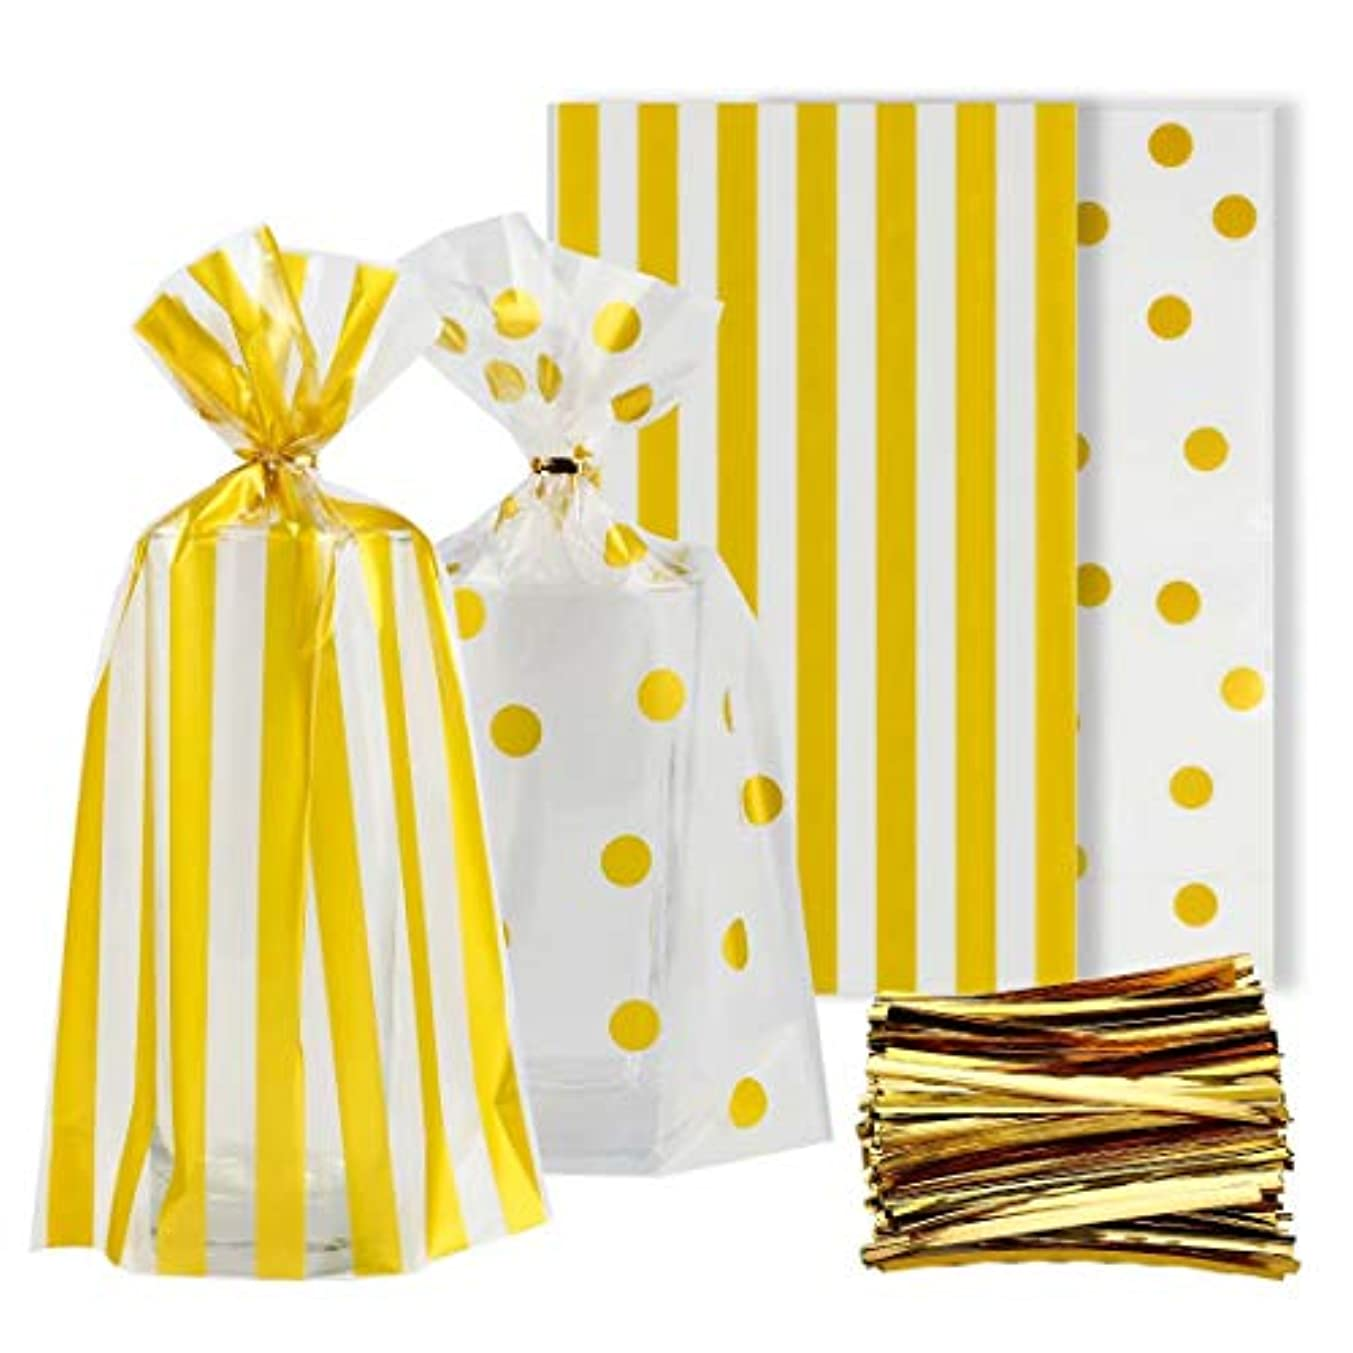 Syihaos Gold Polka and Dot Stripe Treat Bags 100 Pieces Clear Cello Bags with 300 Pieces Twist Ties for Chocolate Candy Snack Cookie Wrapping Party Favor